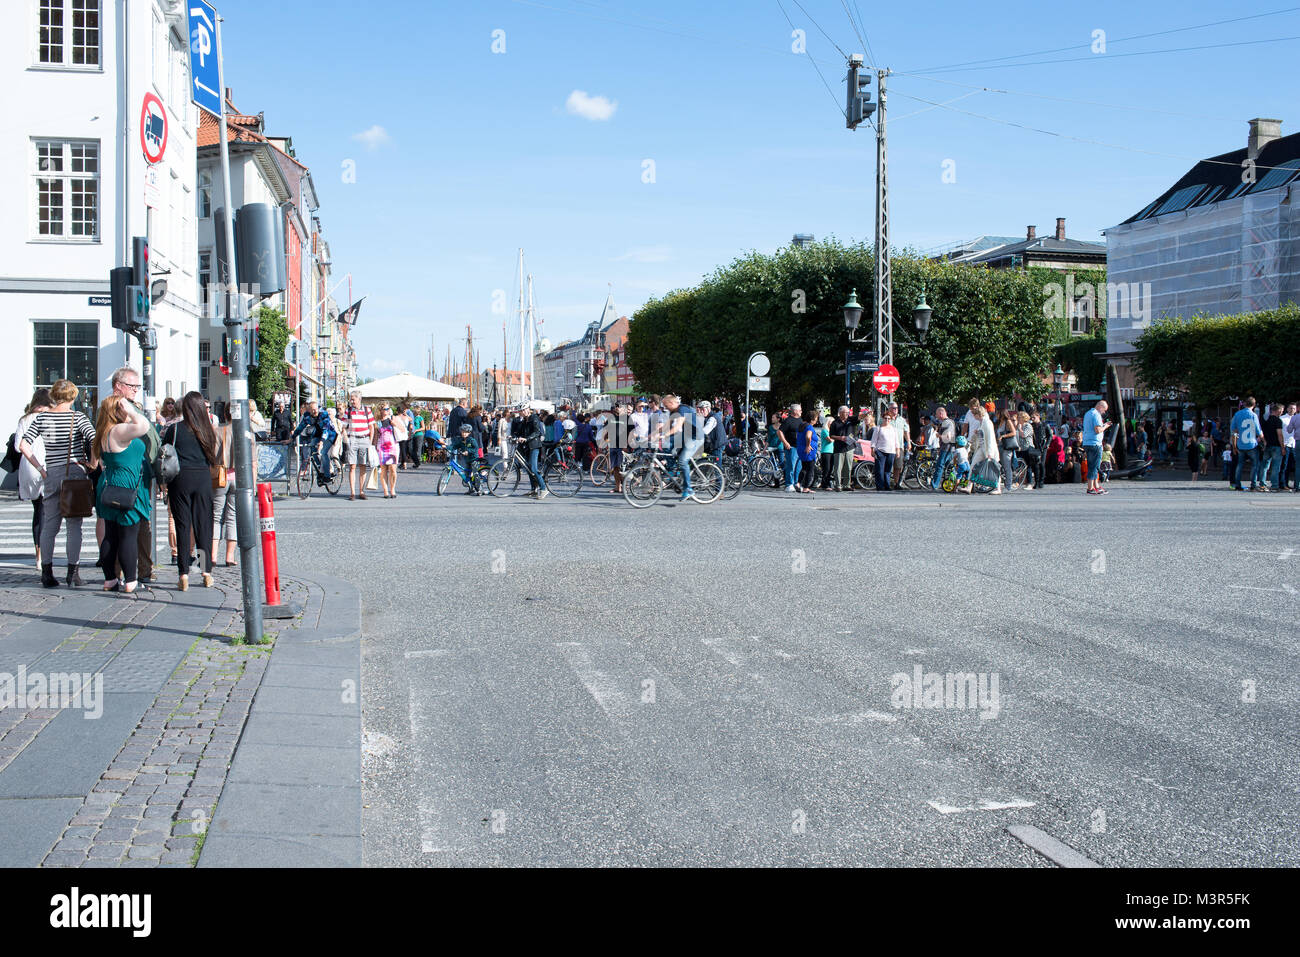 Crossing at Kongens Nytorv and Nyhavn in Copenhagen on a summer day with many cyclists and tourists - Stock Image